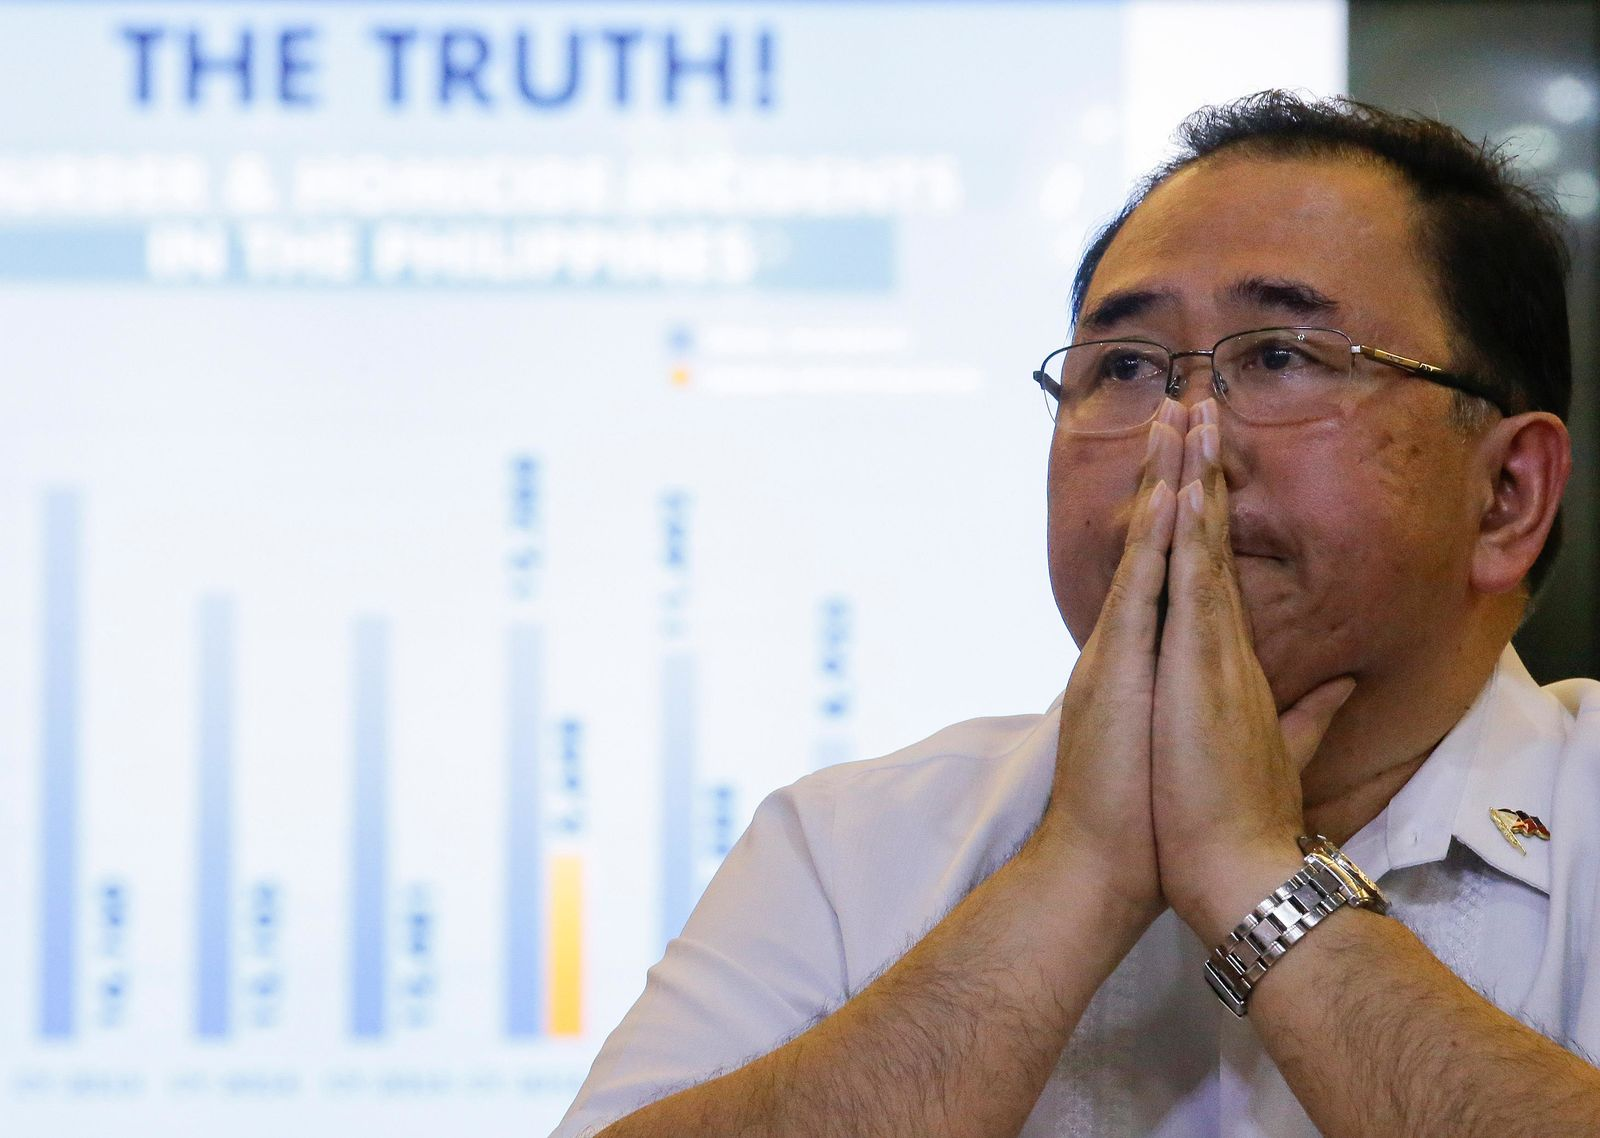 Undersecretary Severo Catura, executive director of the Presidential Human Rights Committee secretariat, gestures as he listens to questions from reporters during a news conference in metropolitan Manila, Philippines, Thursday, July 18, 2019. (AP Photo/Aaron Favila)